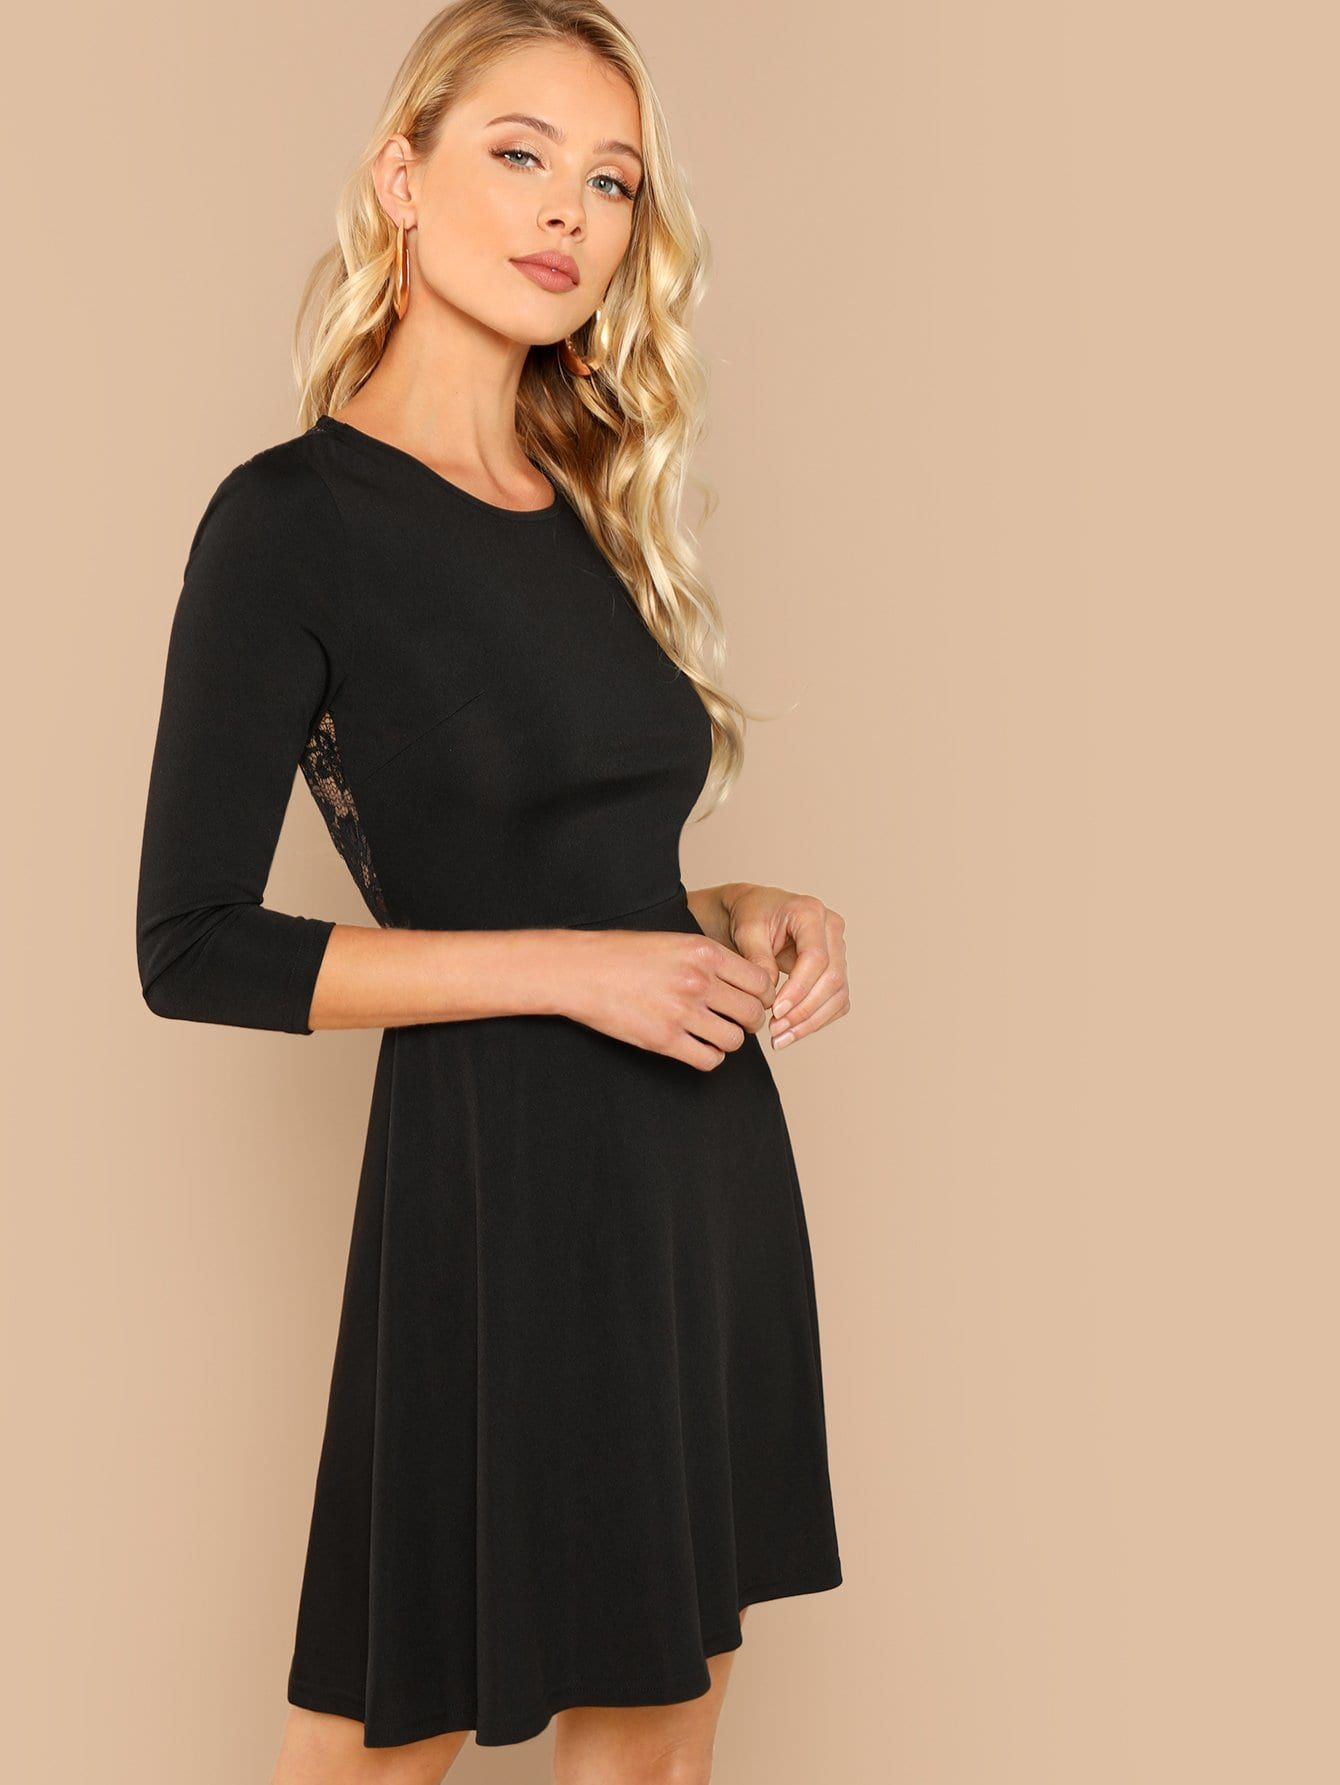 5a312b2459 Sexy A Line Contrast Lace and Backless Plain Fit and Flare Round Neck Long  Sleeve Natural Black Short Length Lace Contrast Backless Dress